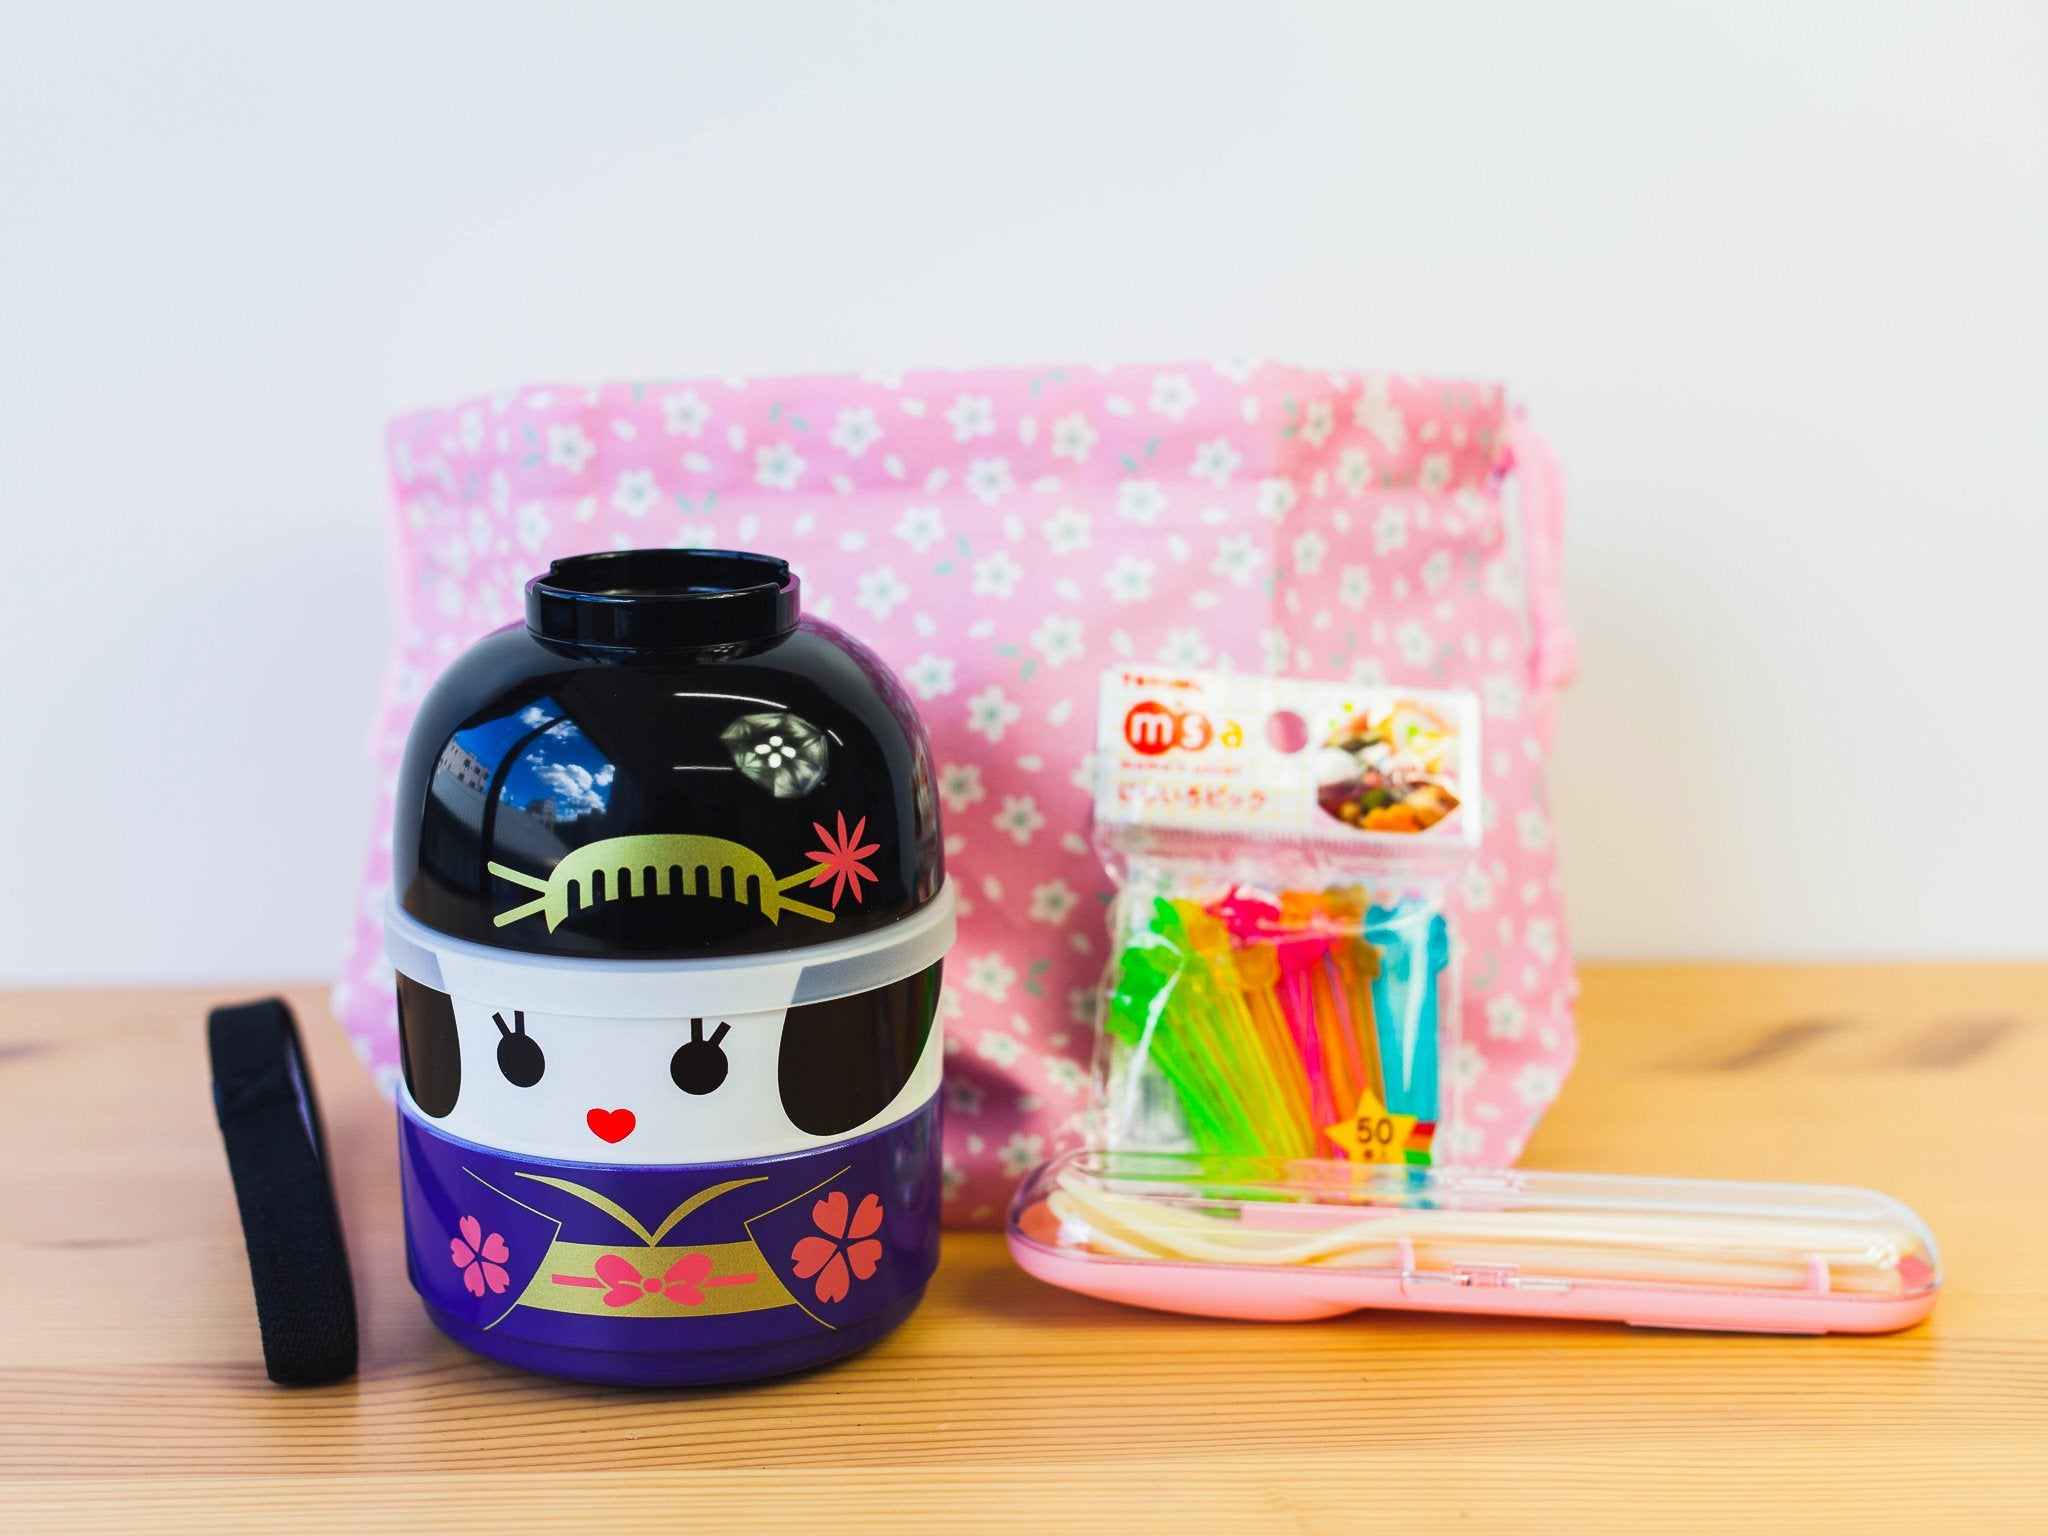 Kokeshi Geiko Bundle by Bento&co Bundles - Bento&co Japanese Bento Lunch Boxes and Kitchenware Specialists